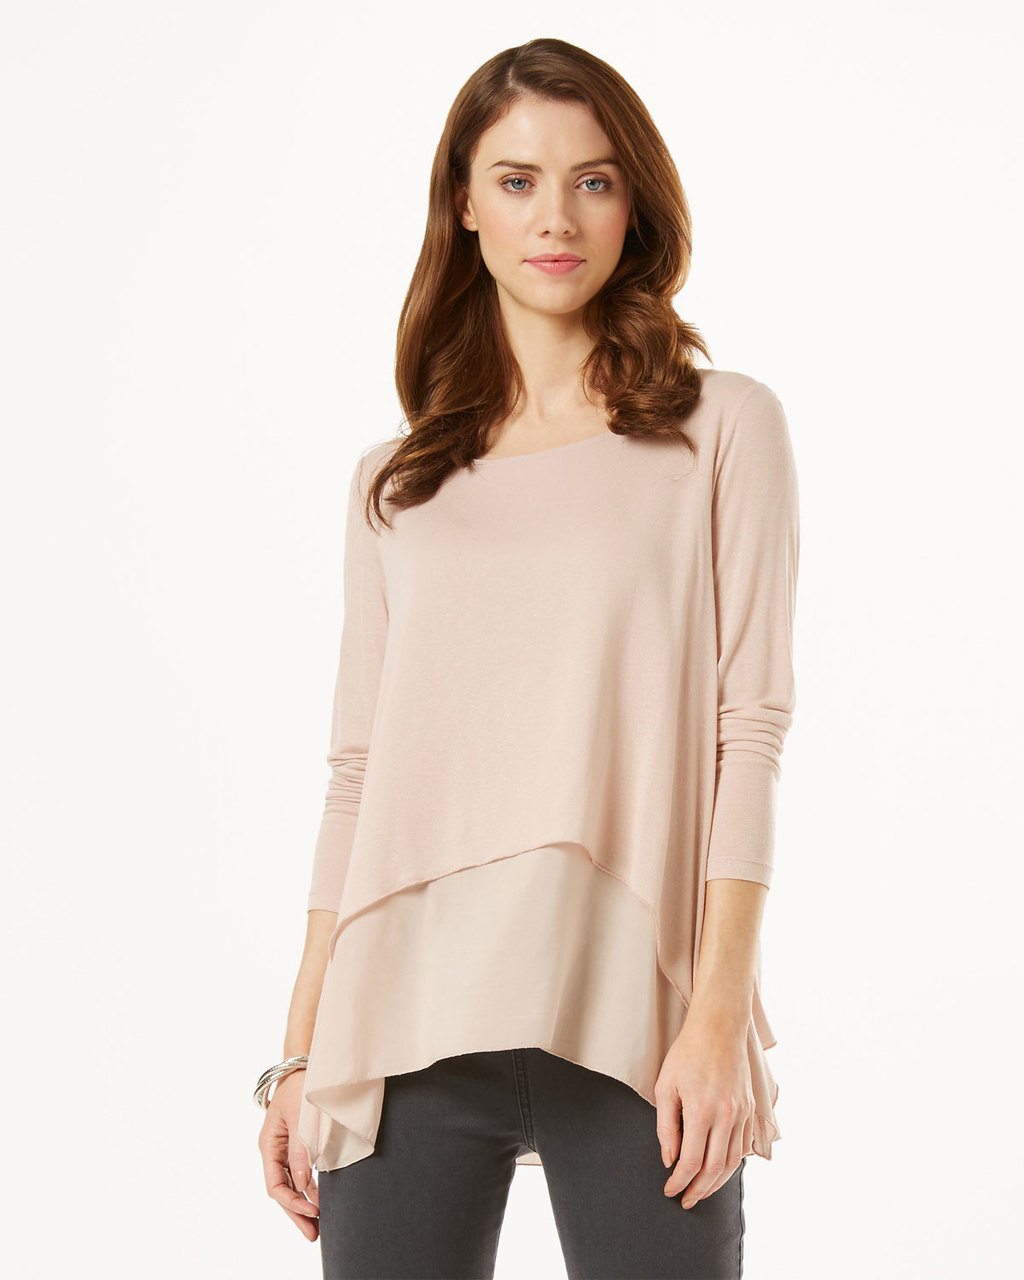 Ciera Plain - neckline: round neck; pattern: plain; length: below the bottom; predominant colour: nude; occasions: casual, creative work; style: top; fibres: polyester/polyamide - 100%; fit: loose; sleeve length: 3/4 length; sleeve style: standard; pattern type: fabric; texture group: other - light to midweight; season: s/s 2016; wardrobe: basic